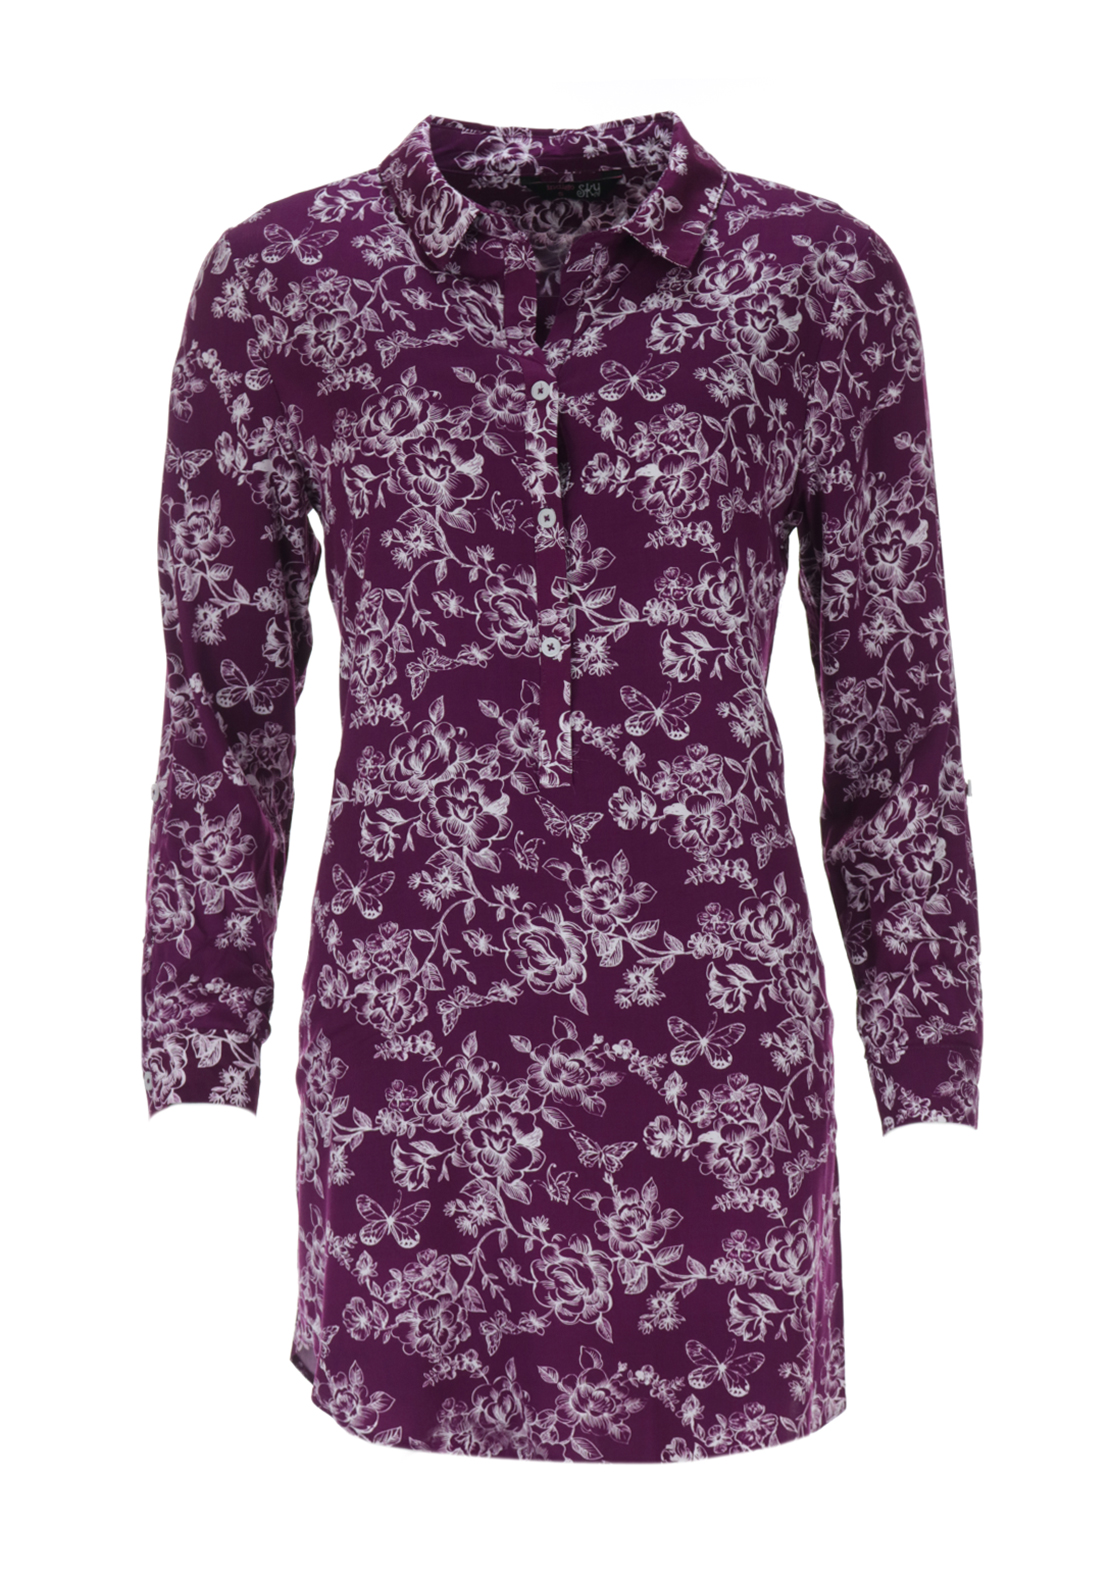 Indigo Sky Floral Print Night Shirt, Purple